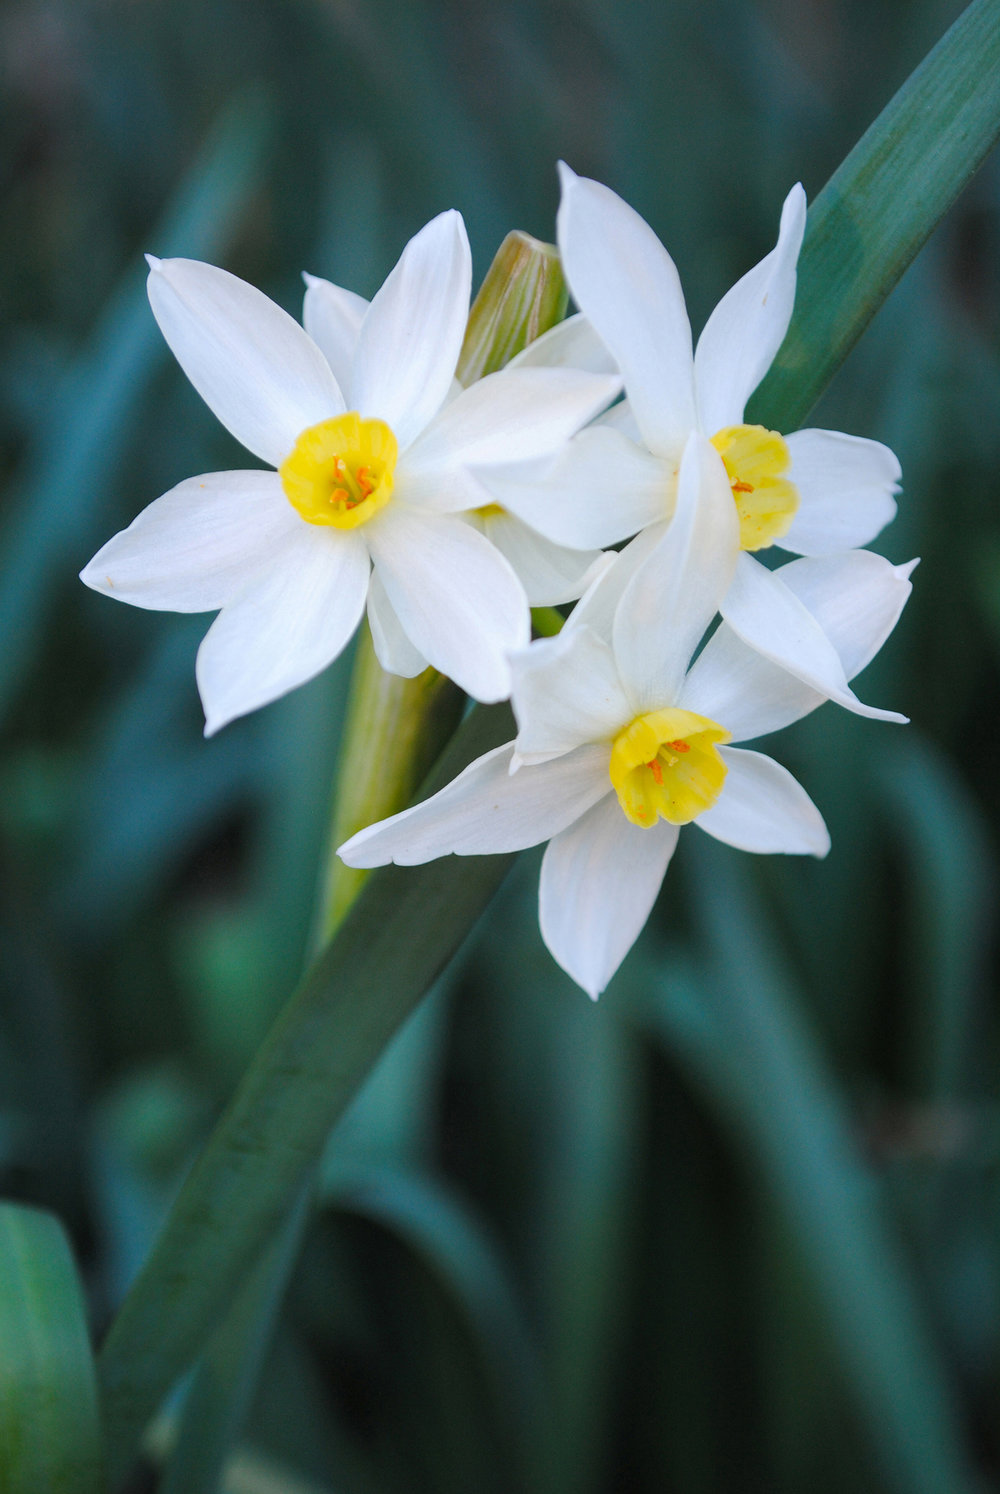 The buttery yellow coronas of Narcissus × italicus